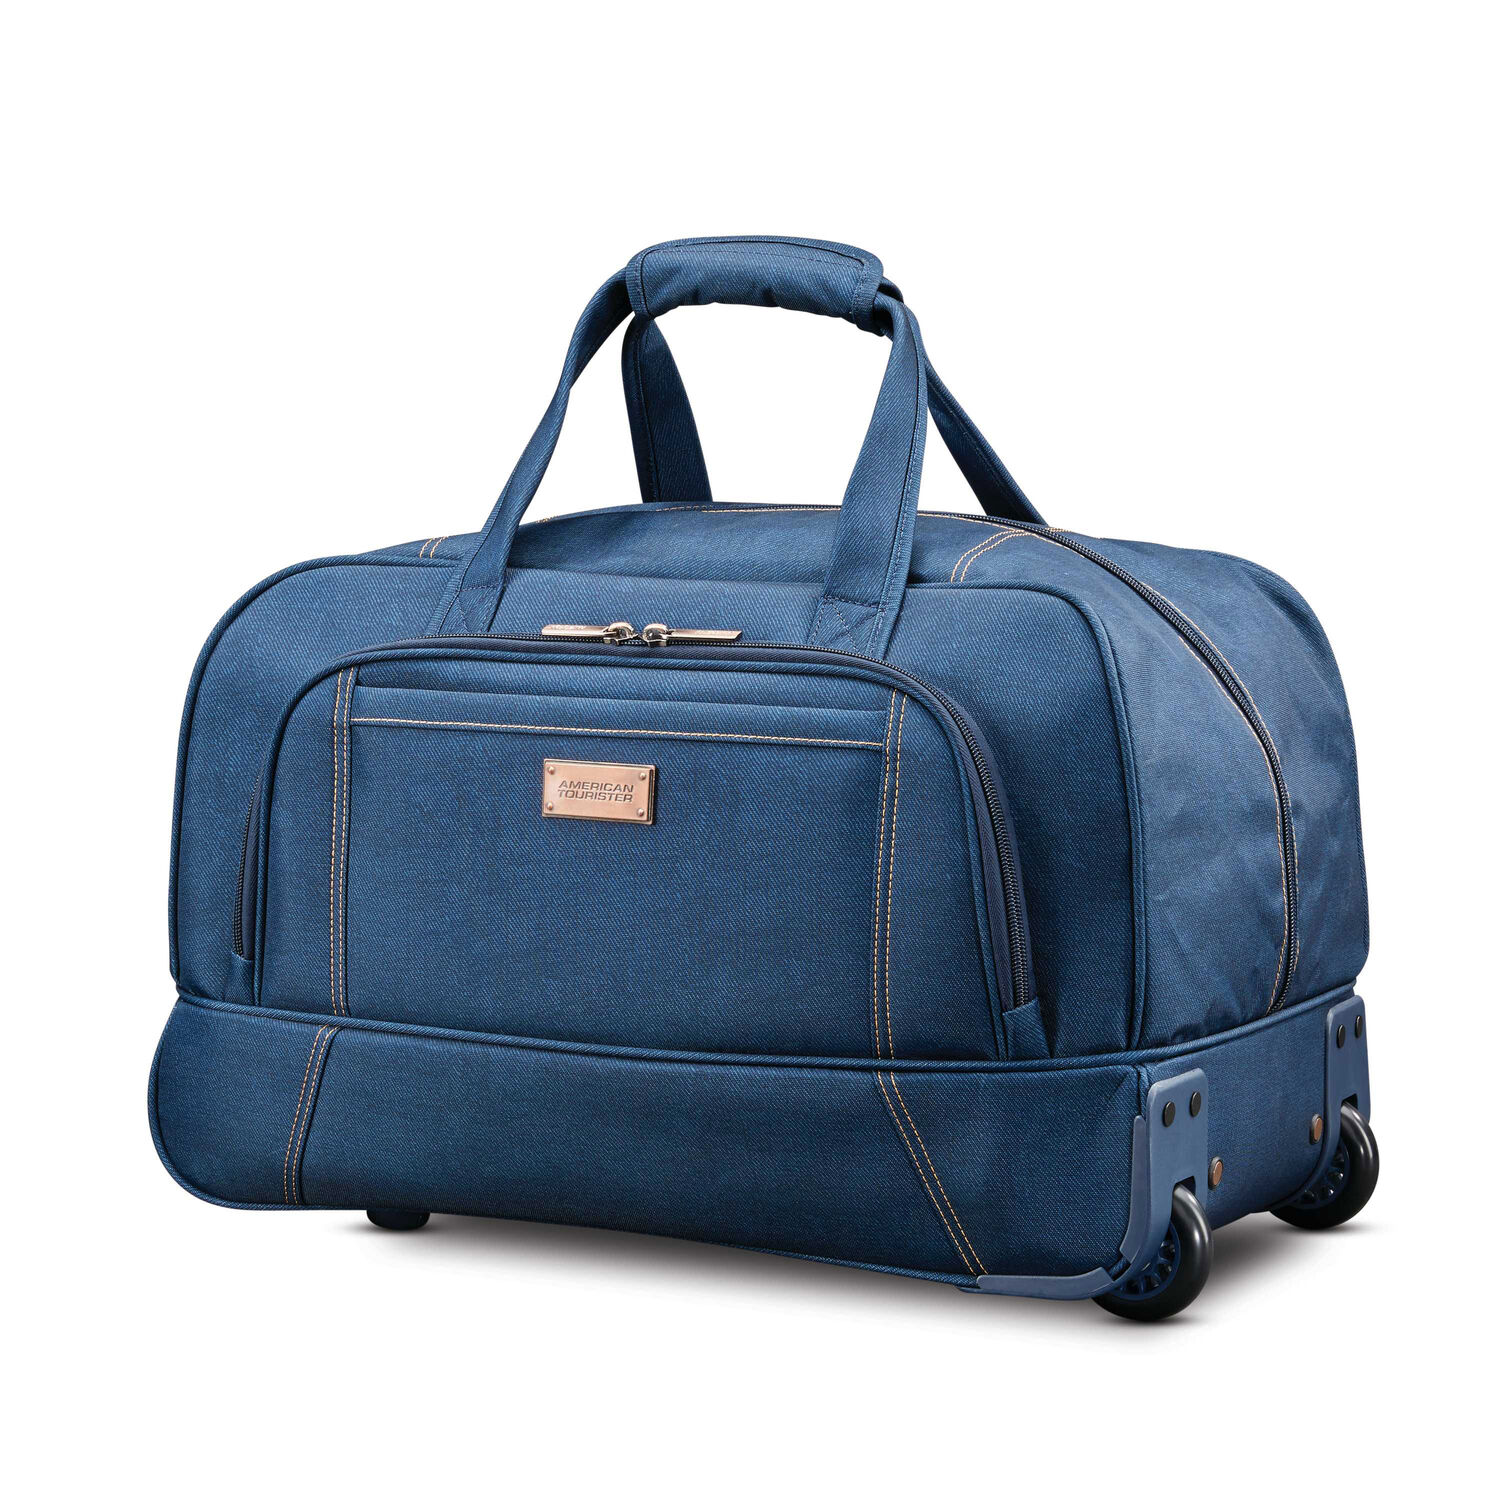 684e7646be American Tourister Belle Voyage 20